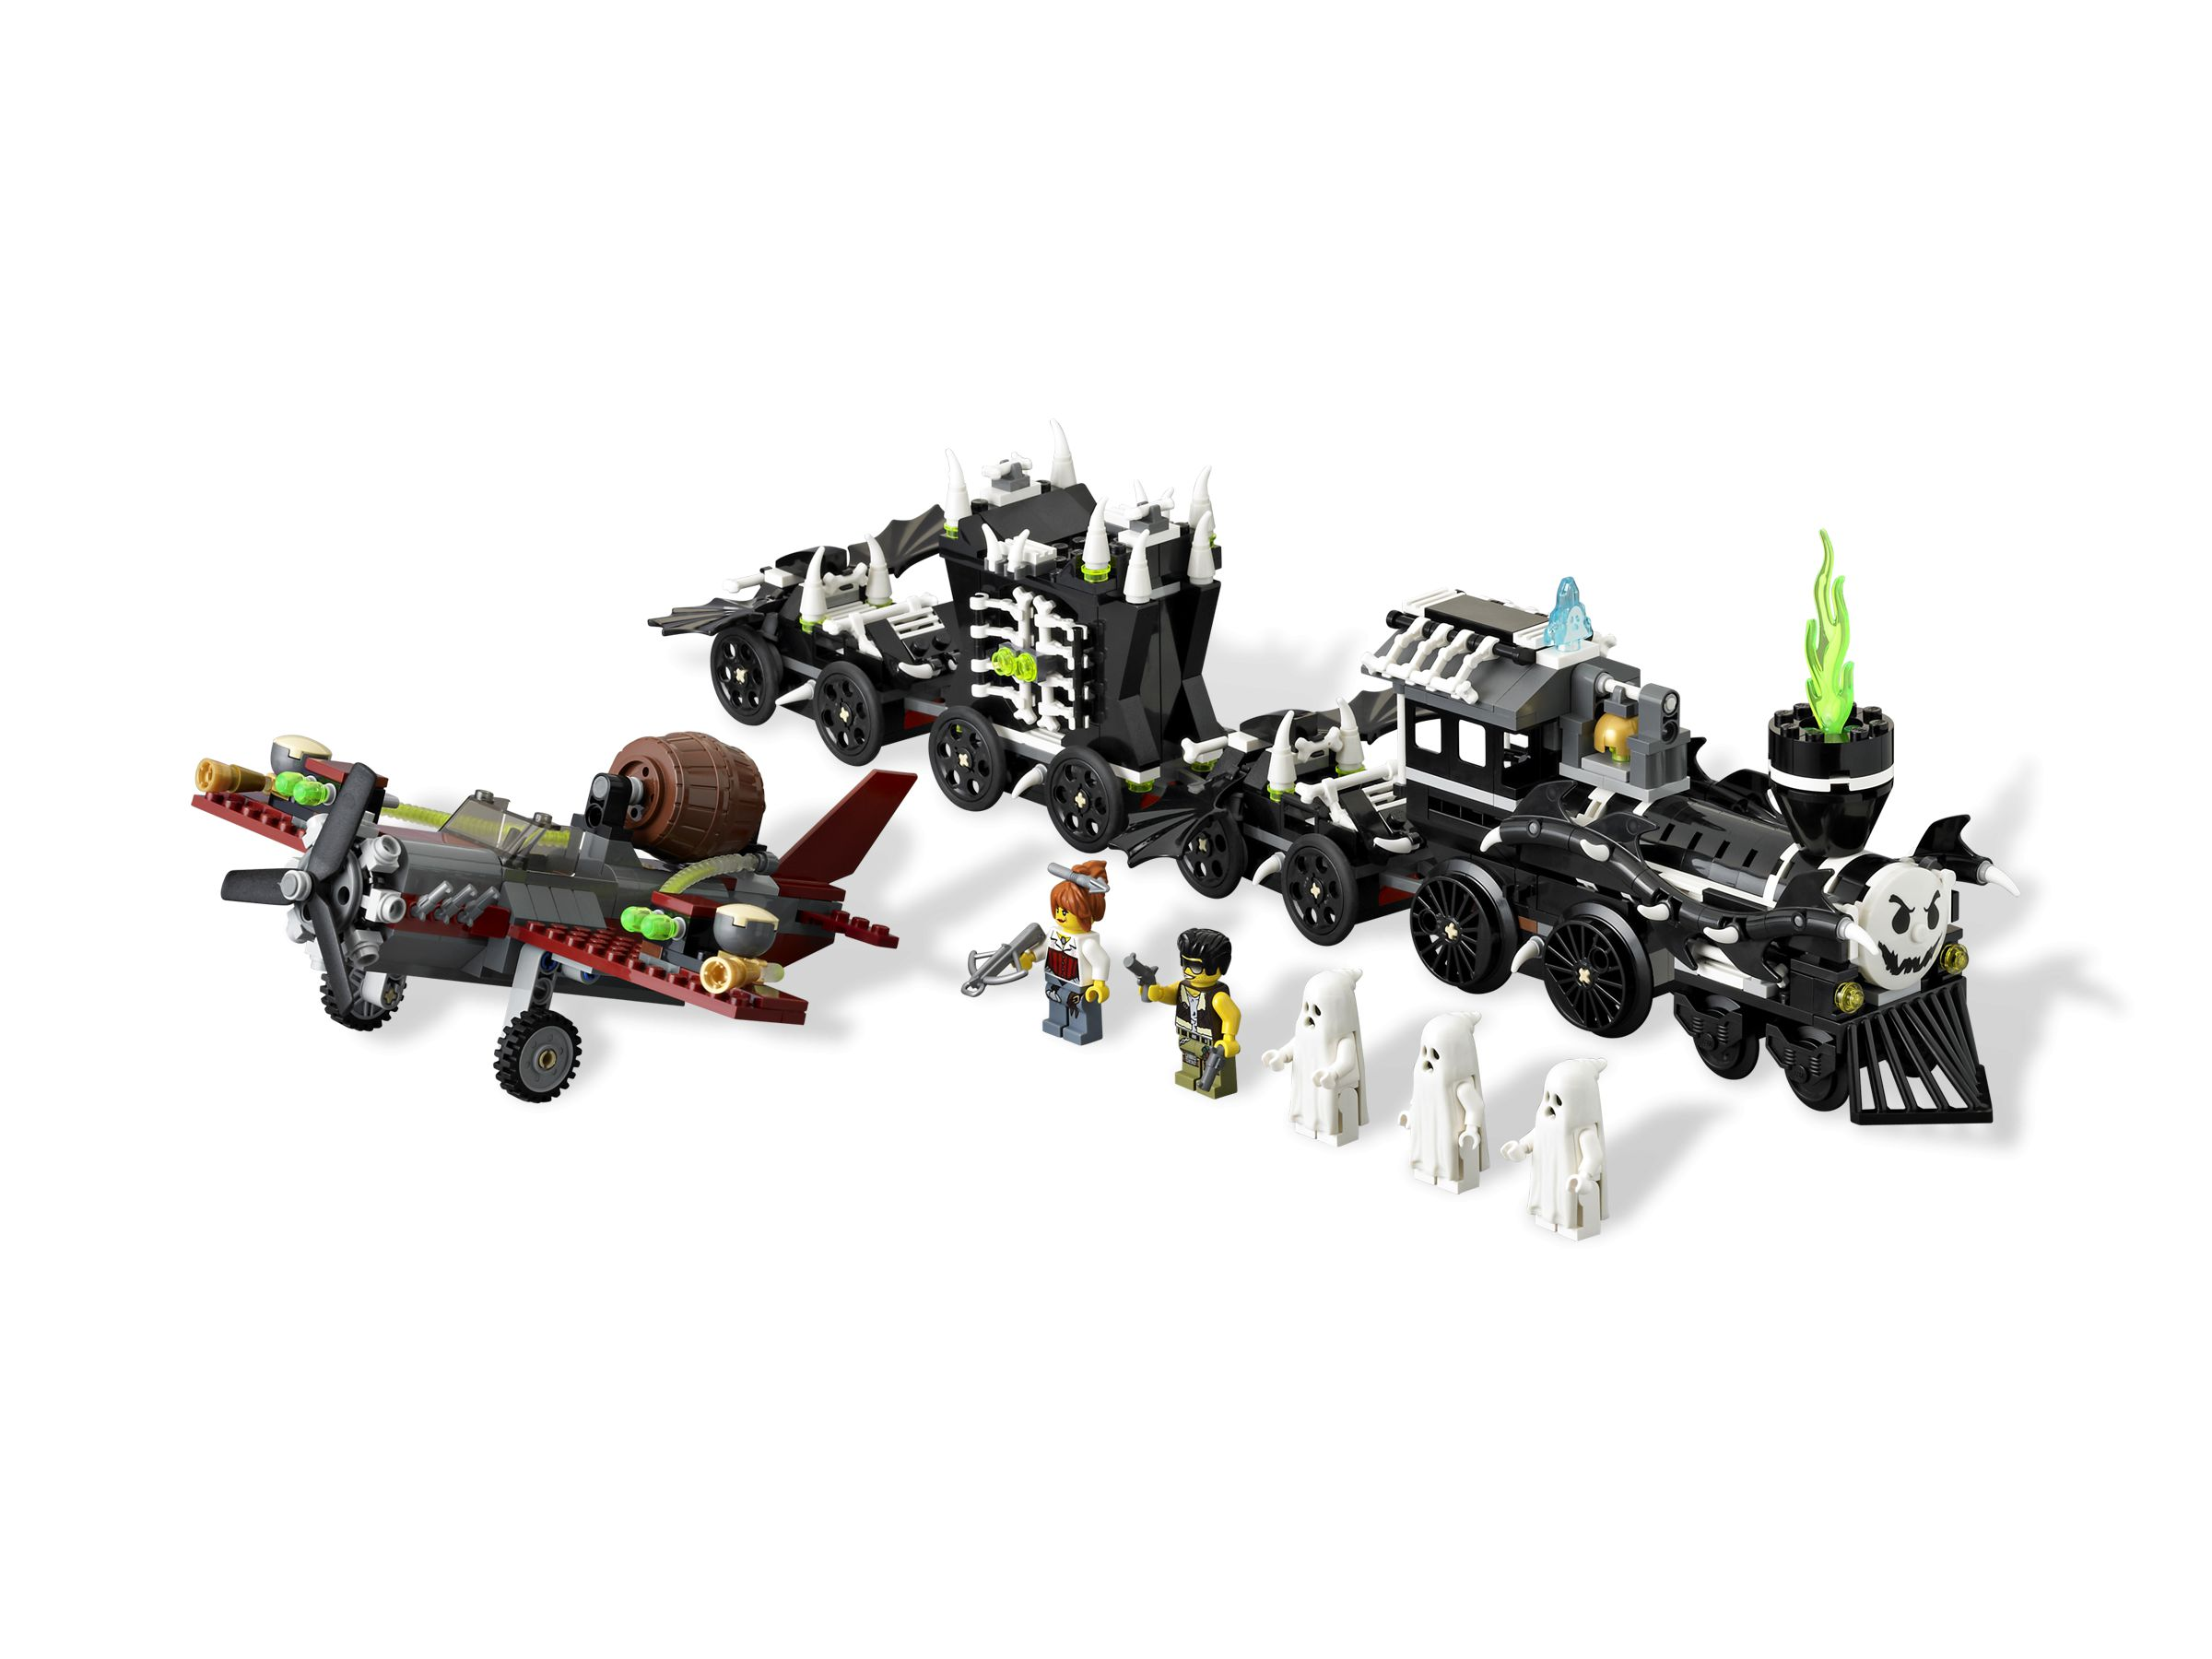 LEGO Monster Fighters 9467 The Ghost Train LEGO_9467.jpg